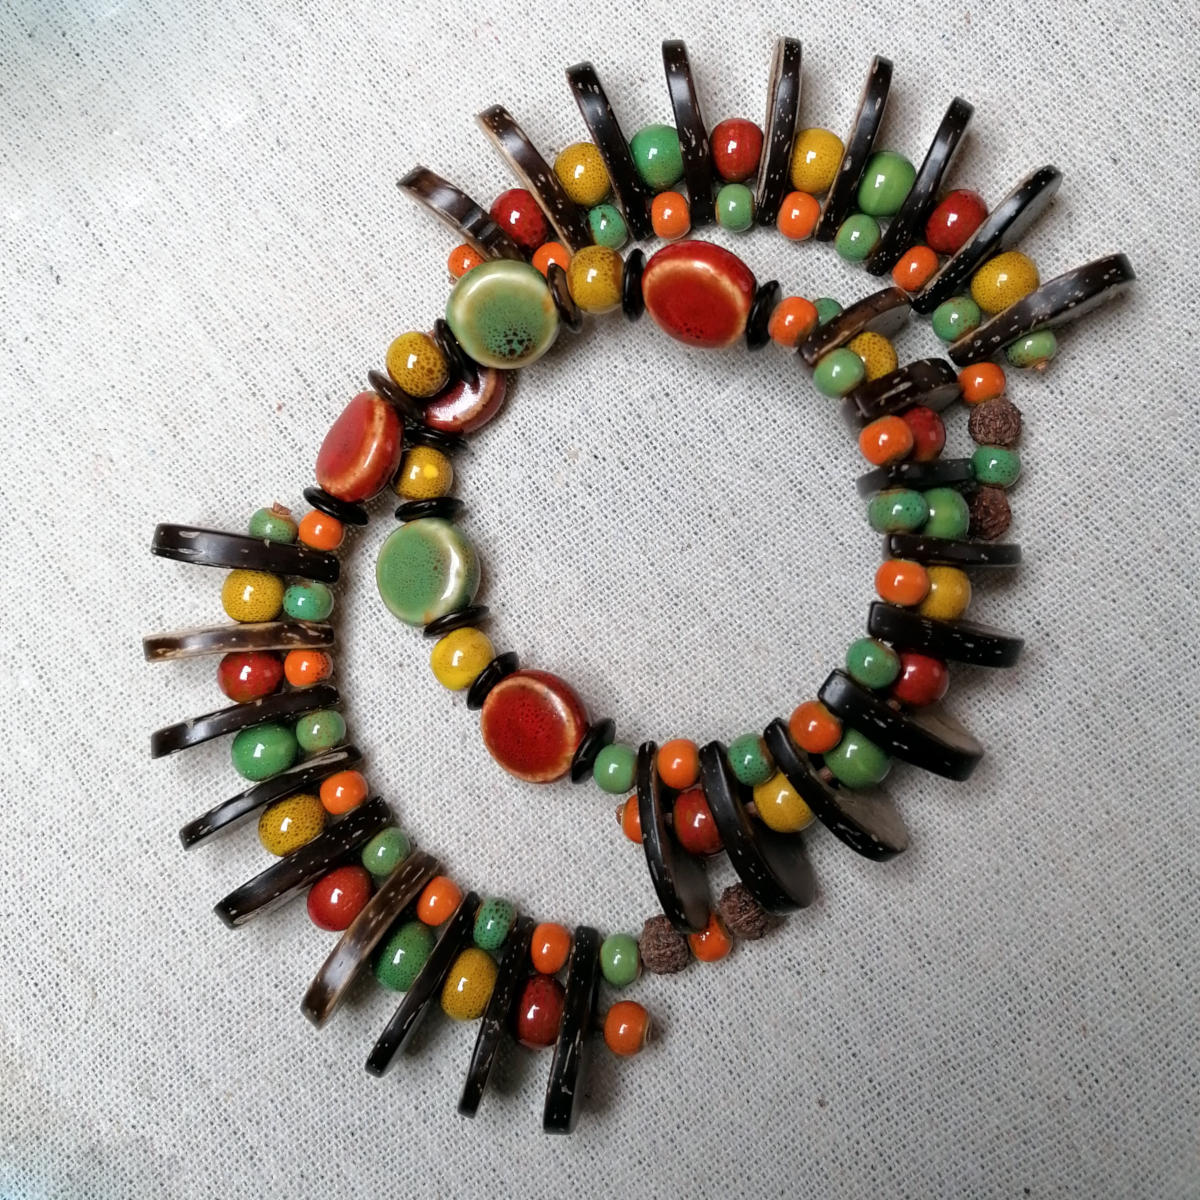 Jewellery African style - hand made in Salzburg, Austria